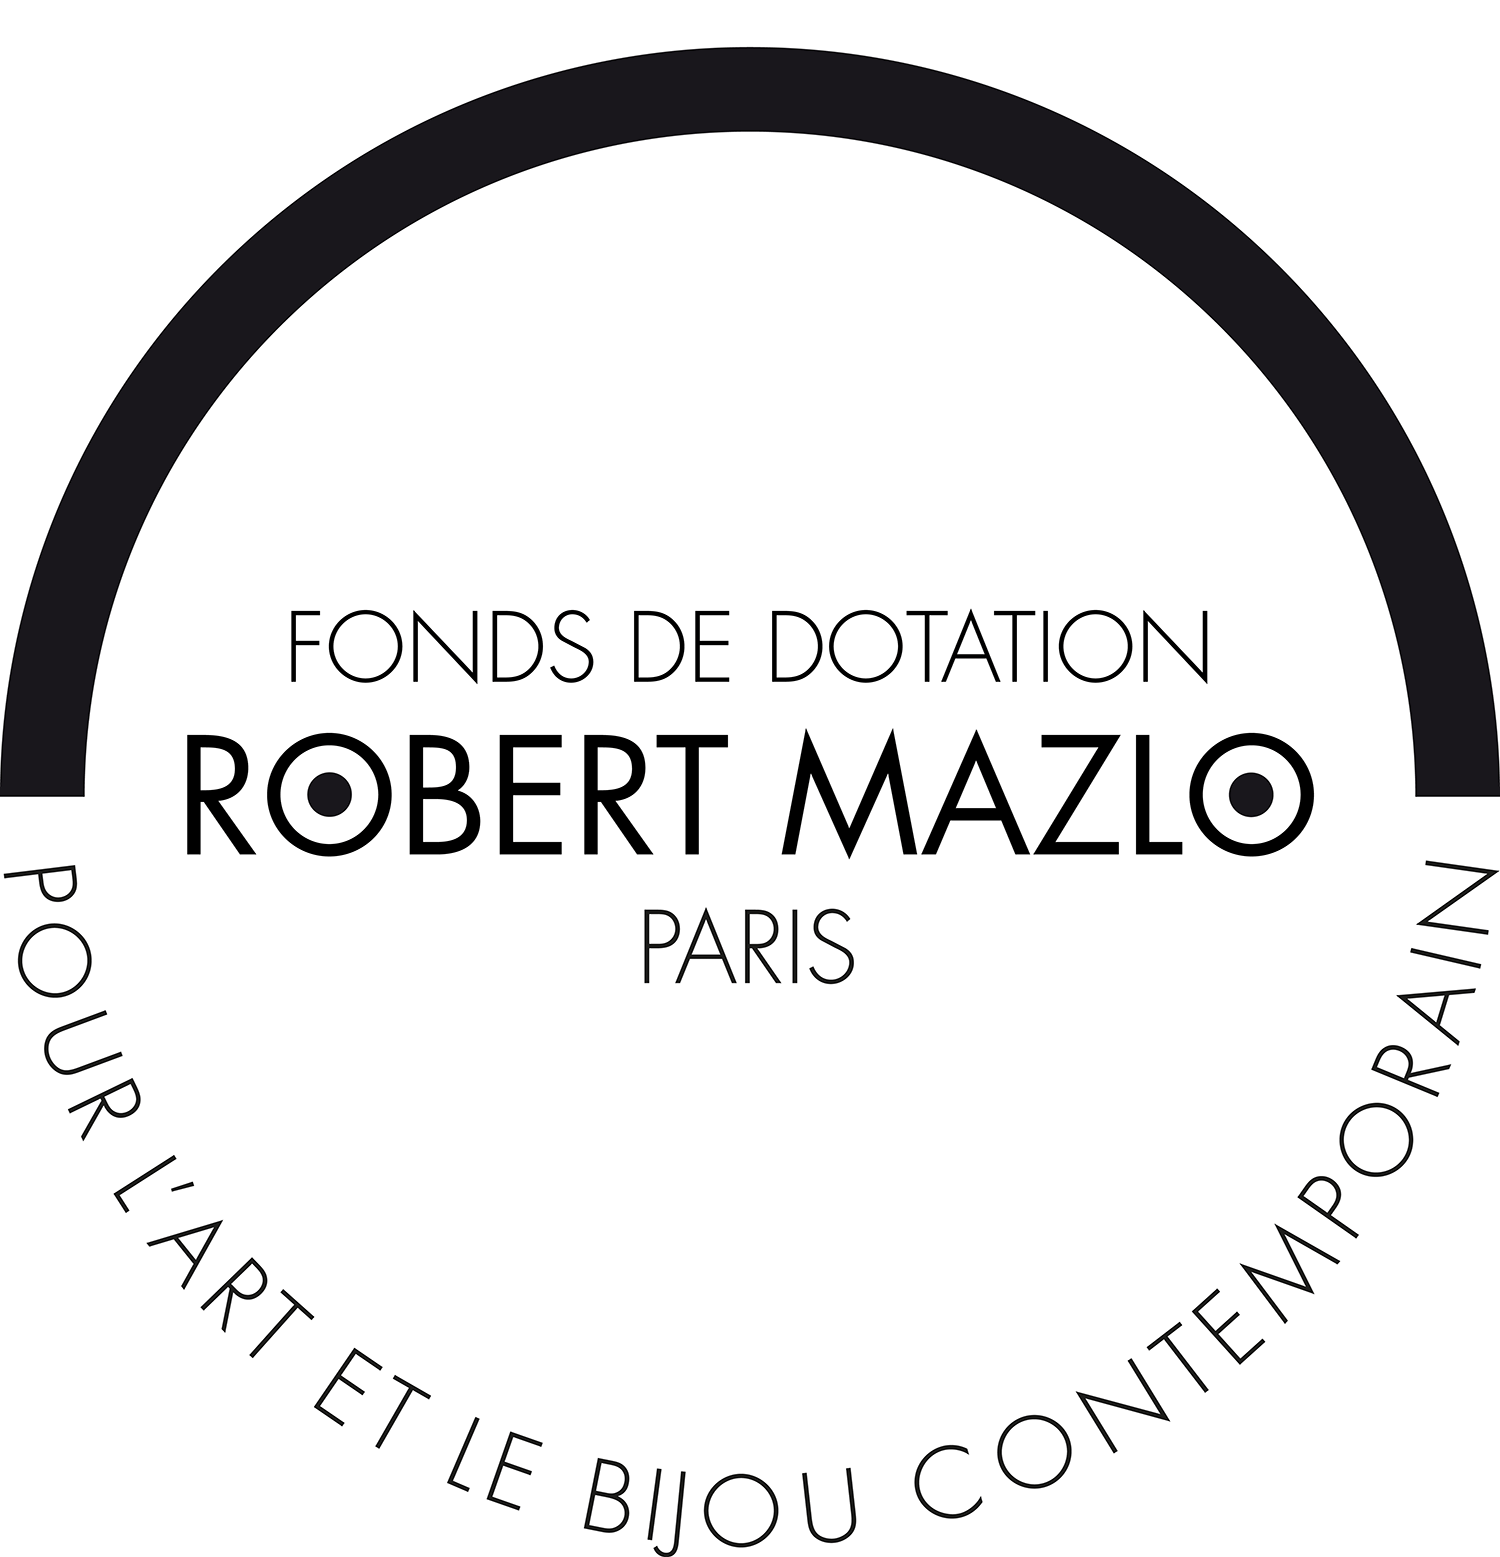 Fonds de dotation Robert Mazlo pour l'art et le bijou contemporain